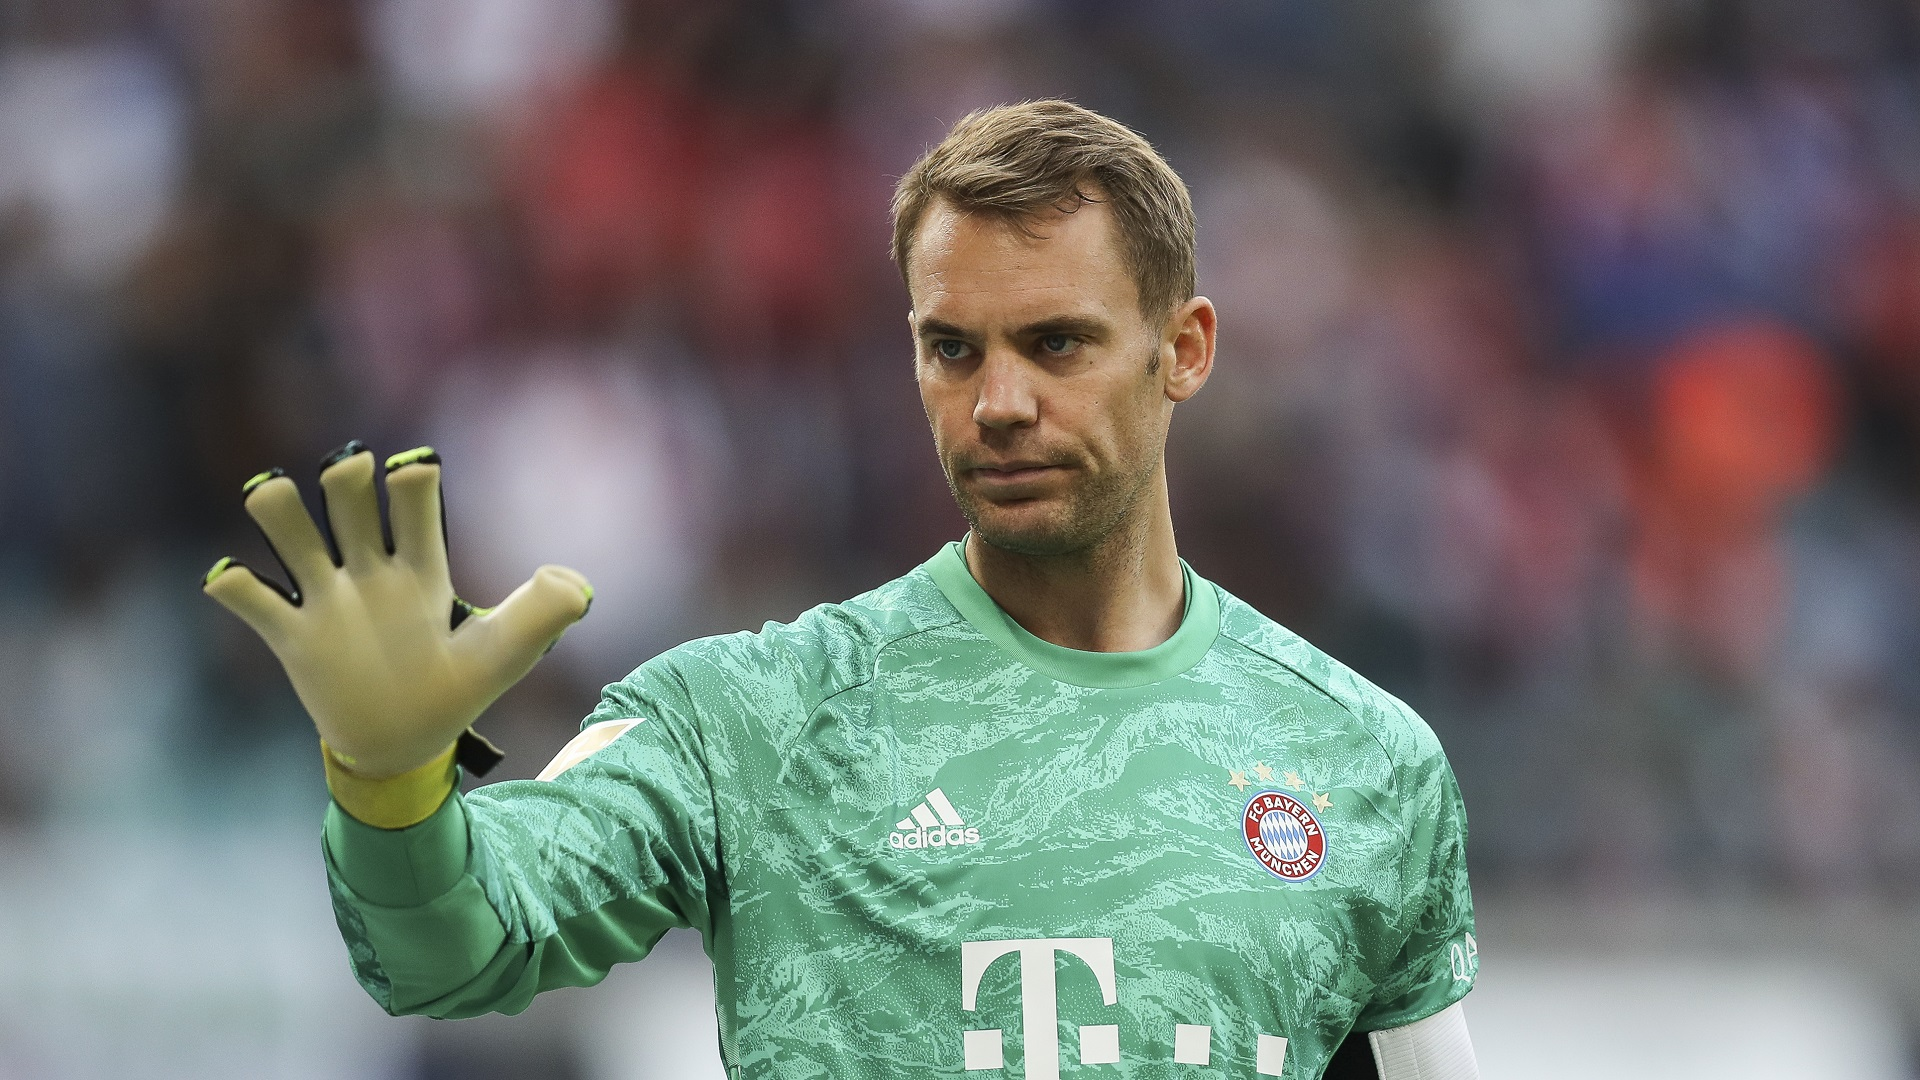 Neuer is the best goalkeeper the world has ever had - Rummenigge